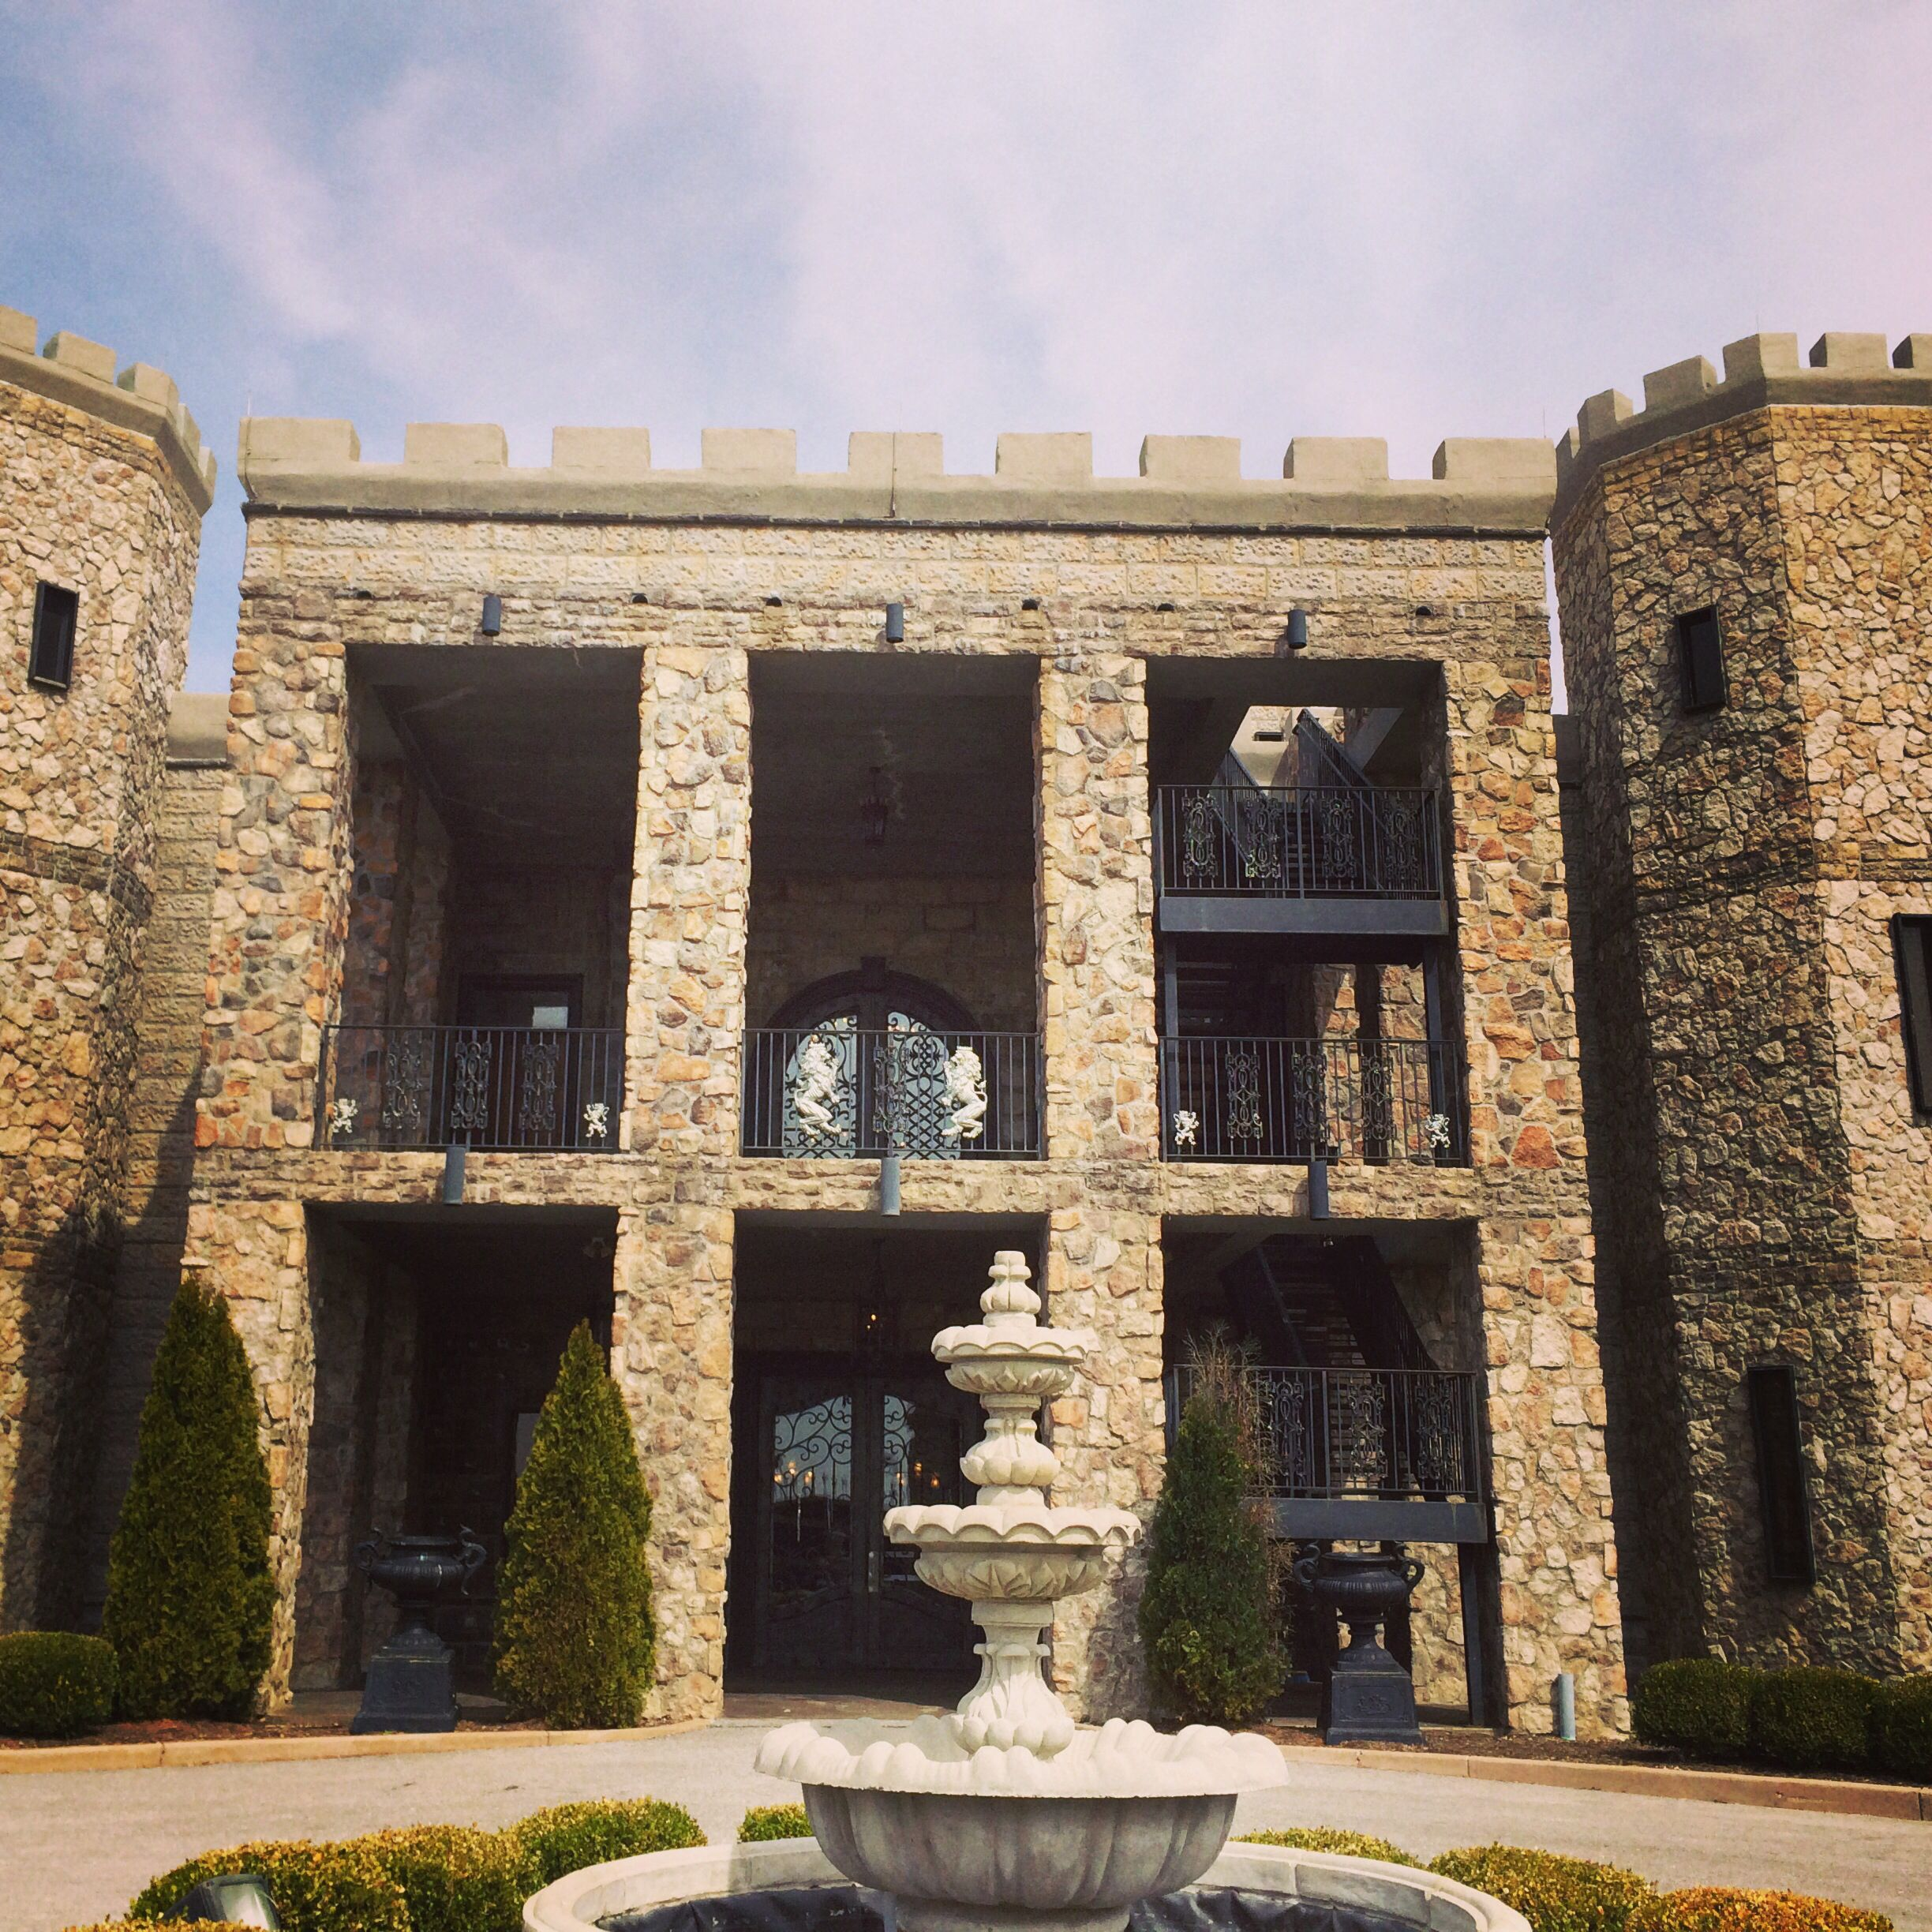 The castle post versailles ky bed breakfast wedding venue the castle post versailles ky bed breakfast wedding venue junglespirit Image collections